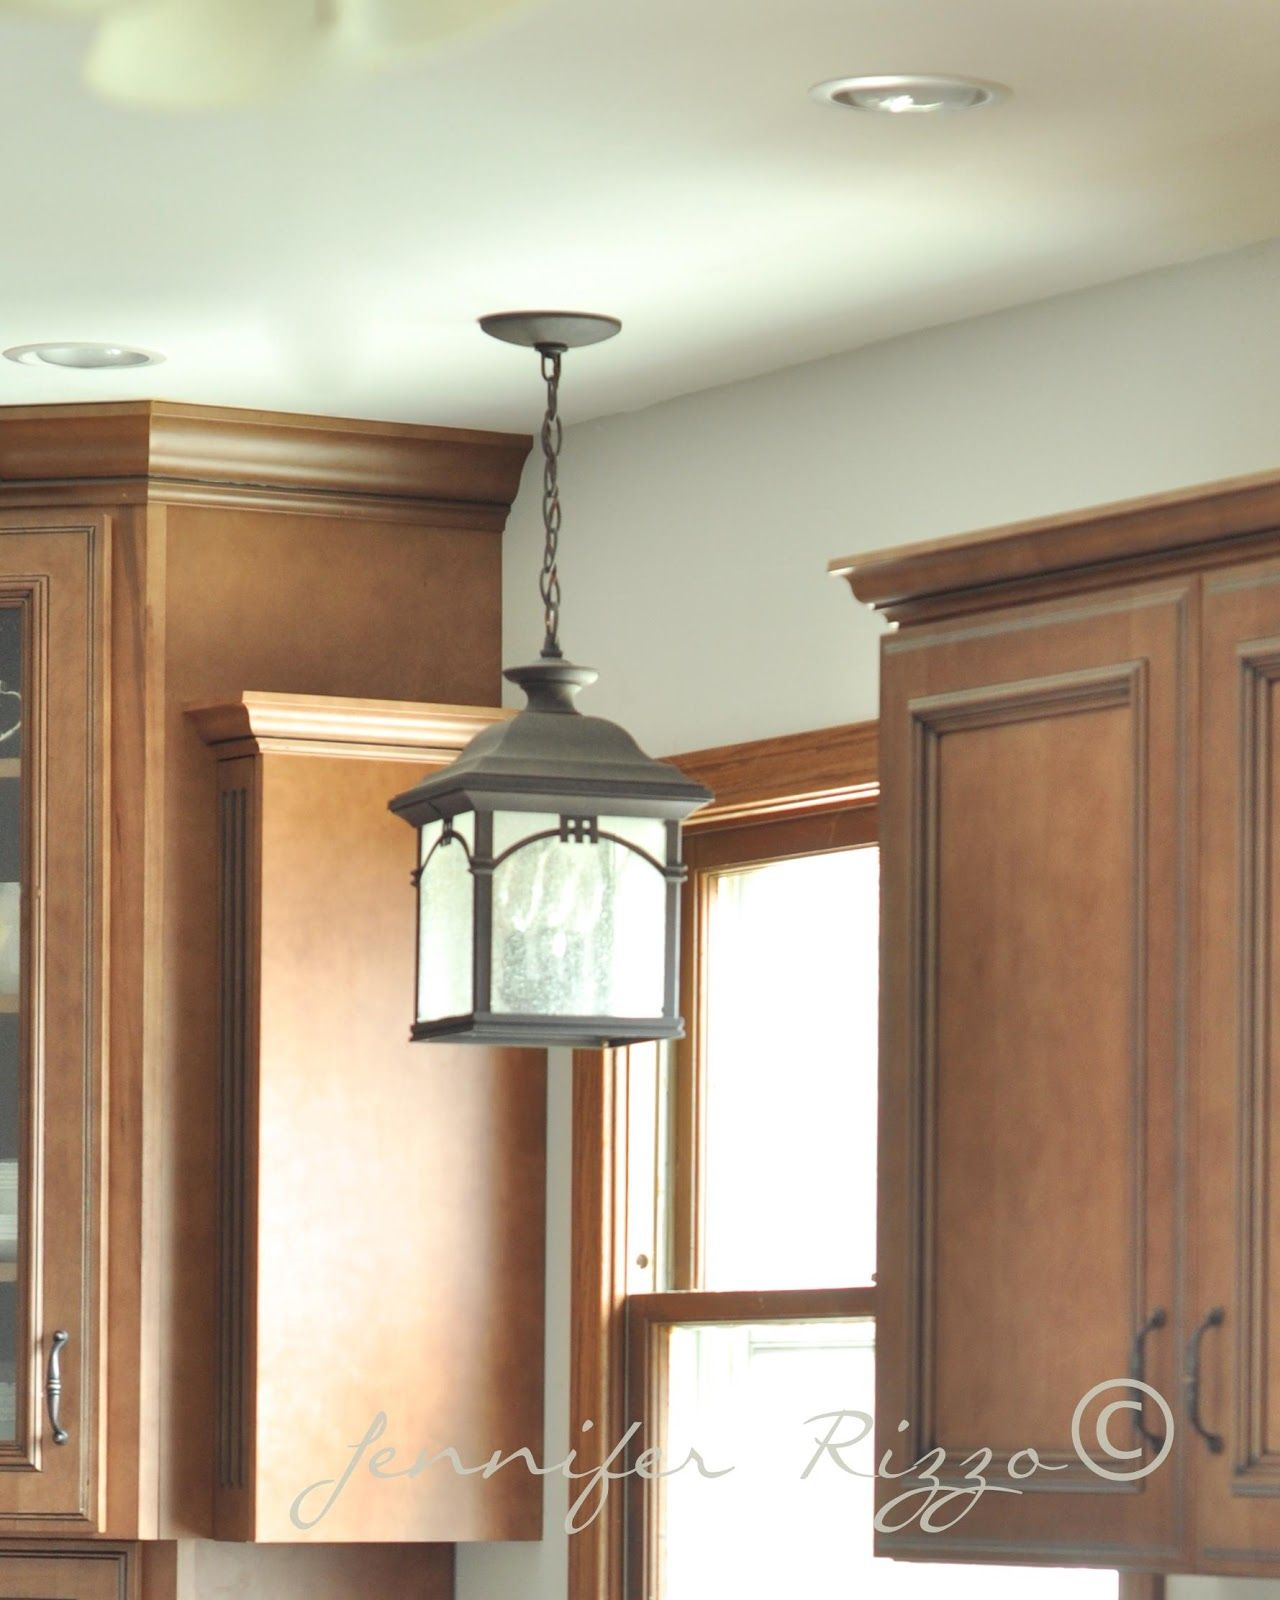 Bm stonington gray cut to 25 paint colors that i lust after outdoor light fixture used as an indoor one arubaitofo Choice Image